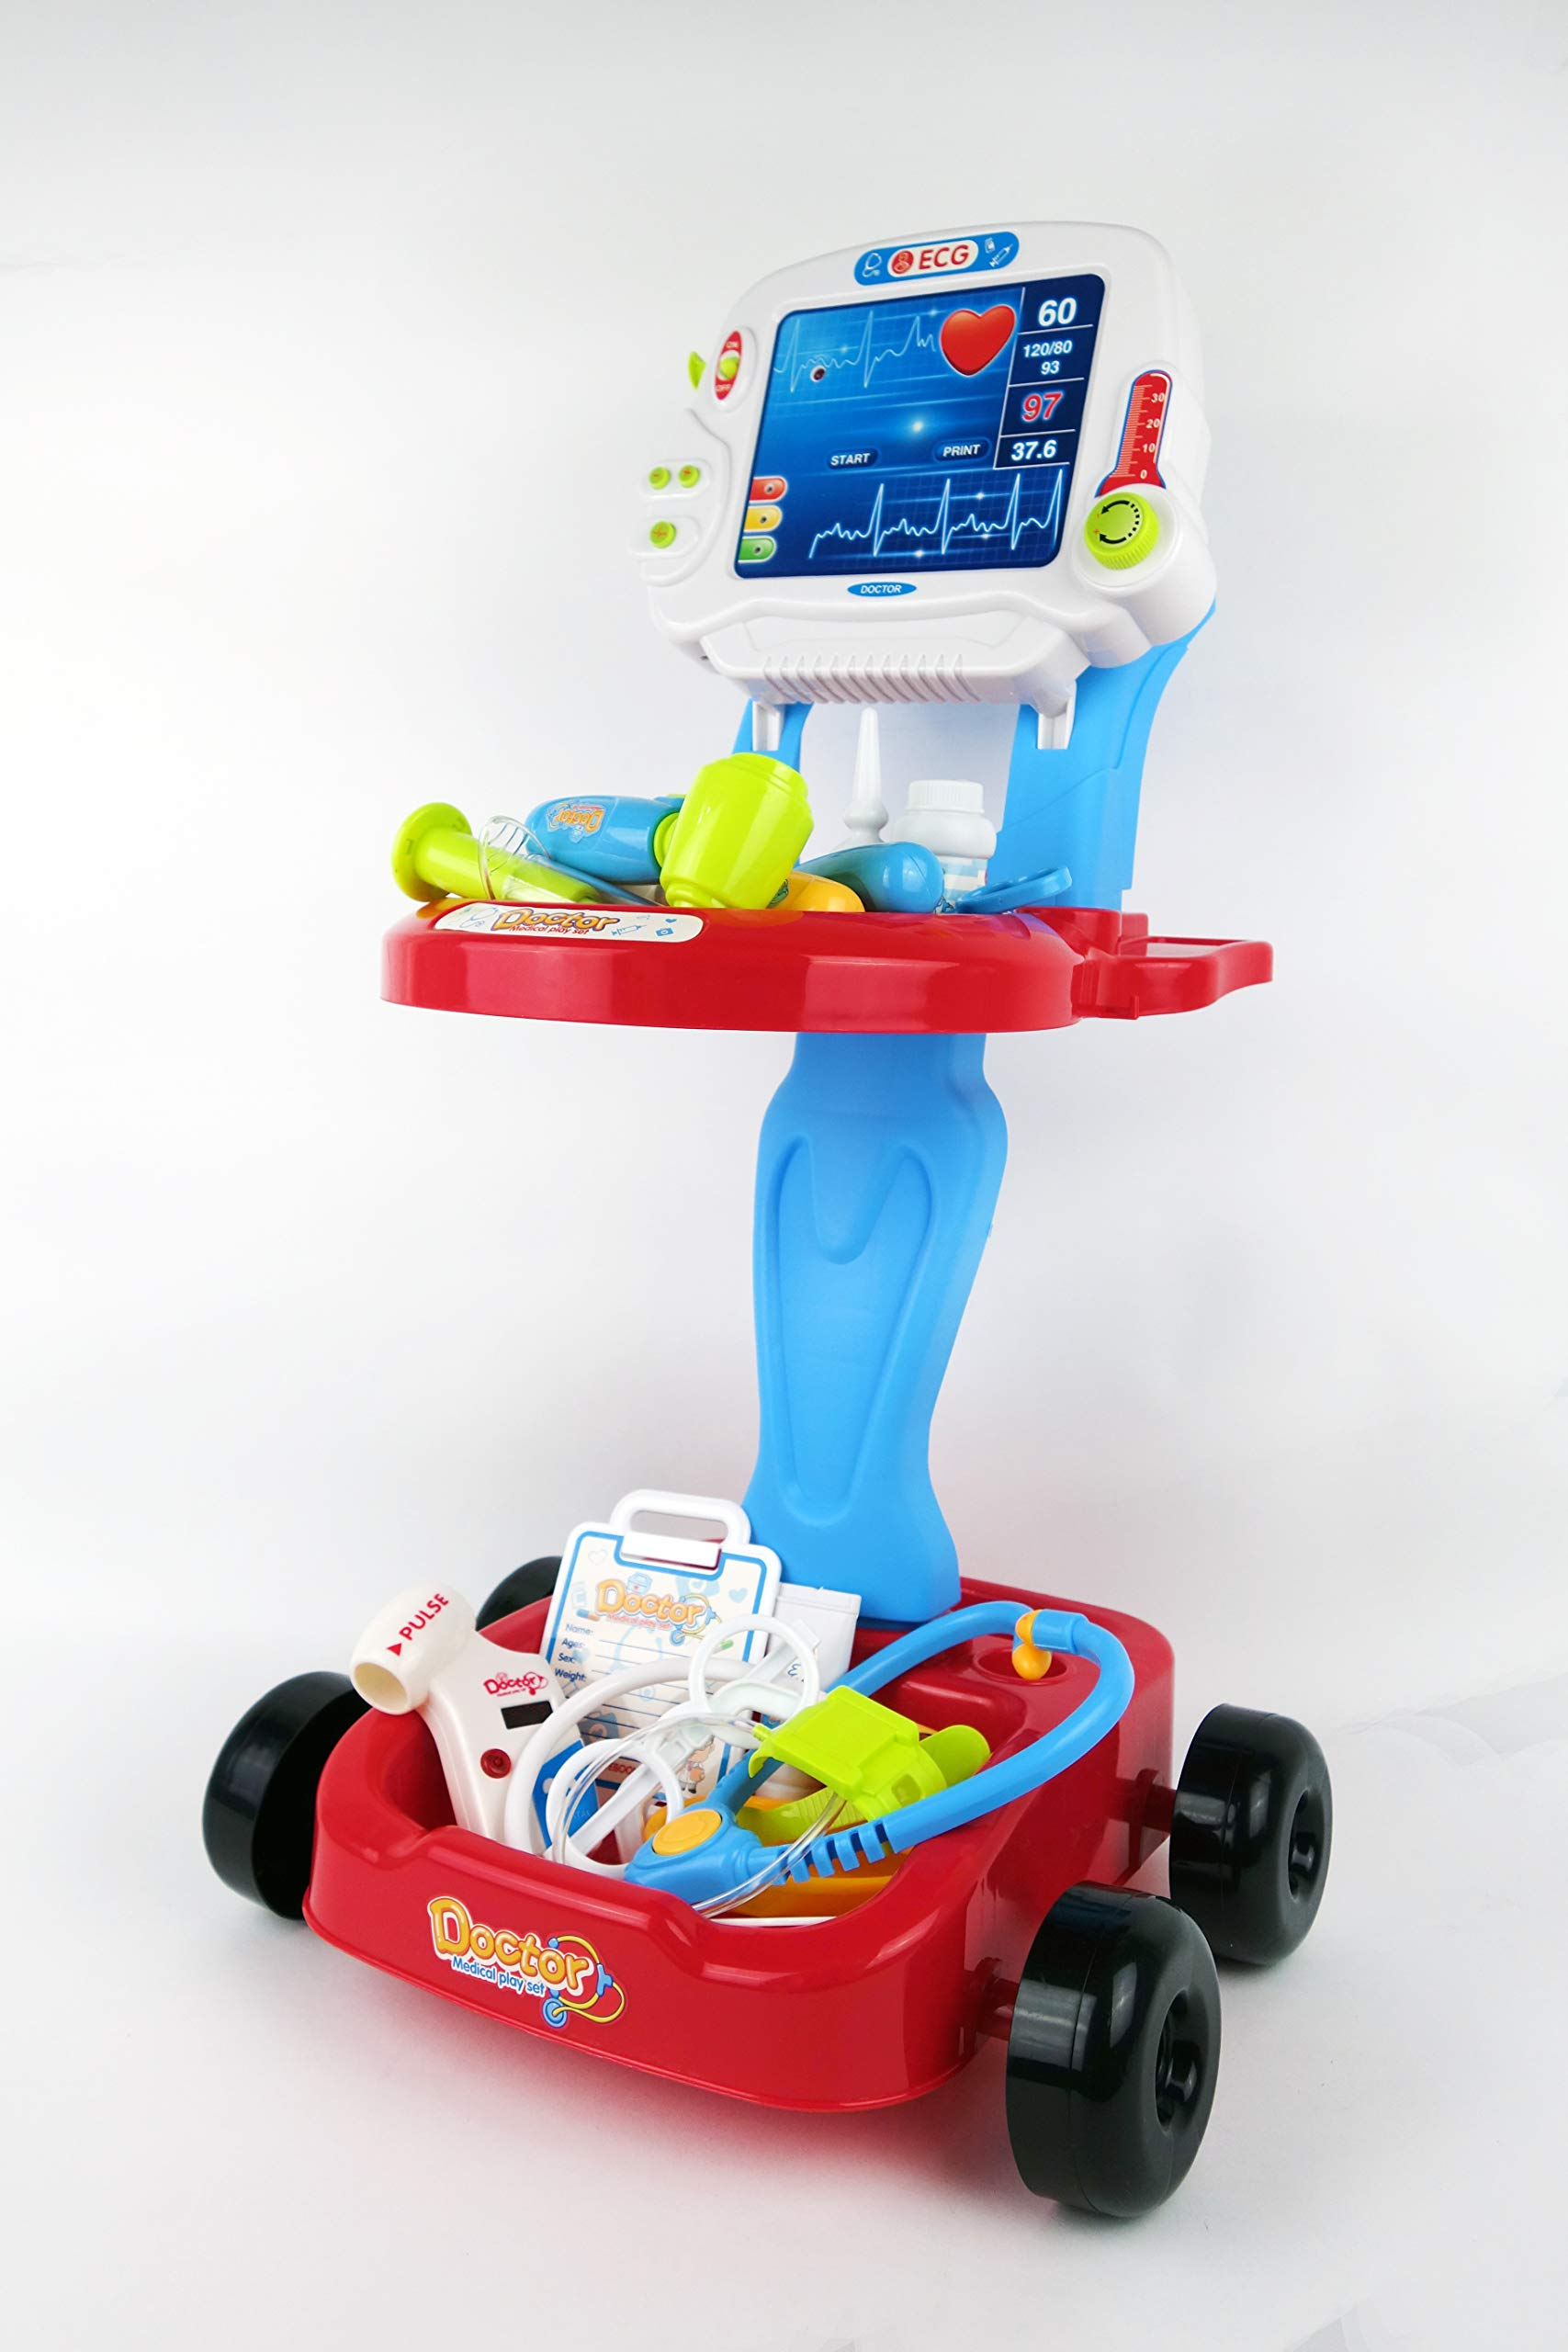 NBD Corp Kids Toy Portable Doctor Set, 17 Piece Set with Play Screen and Play Doctor Instruments by NBD Corp (Image #4)